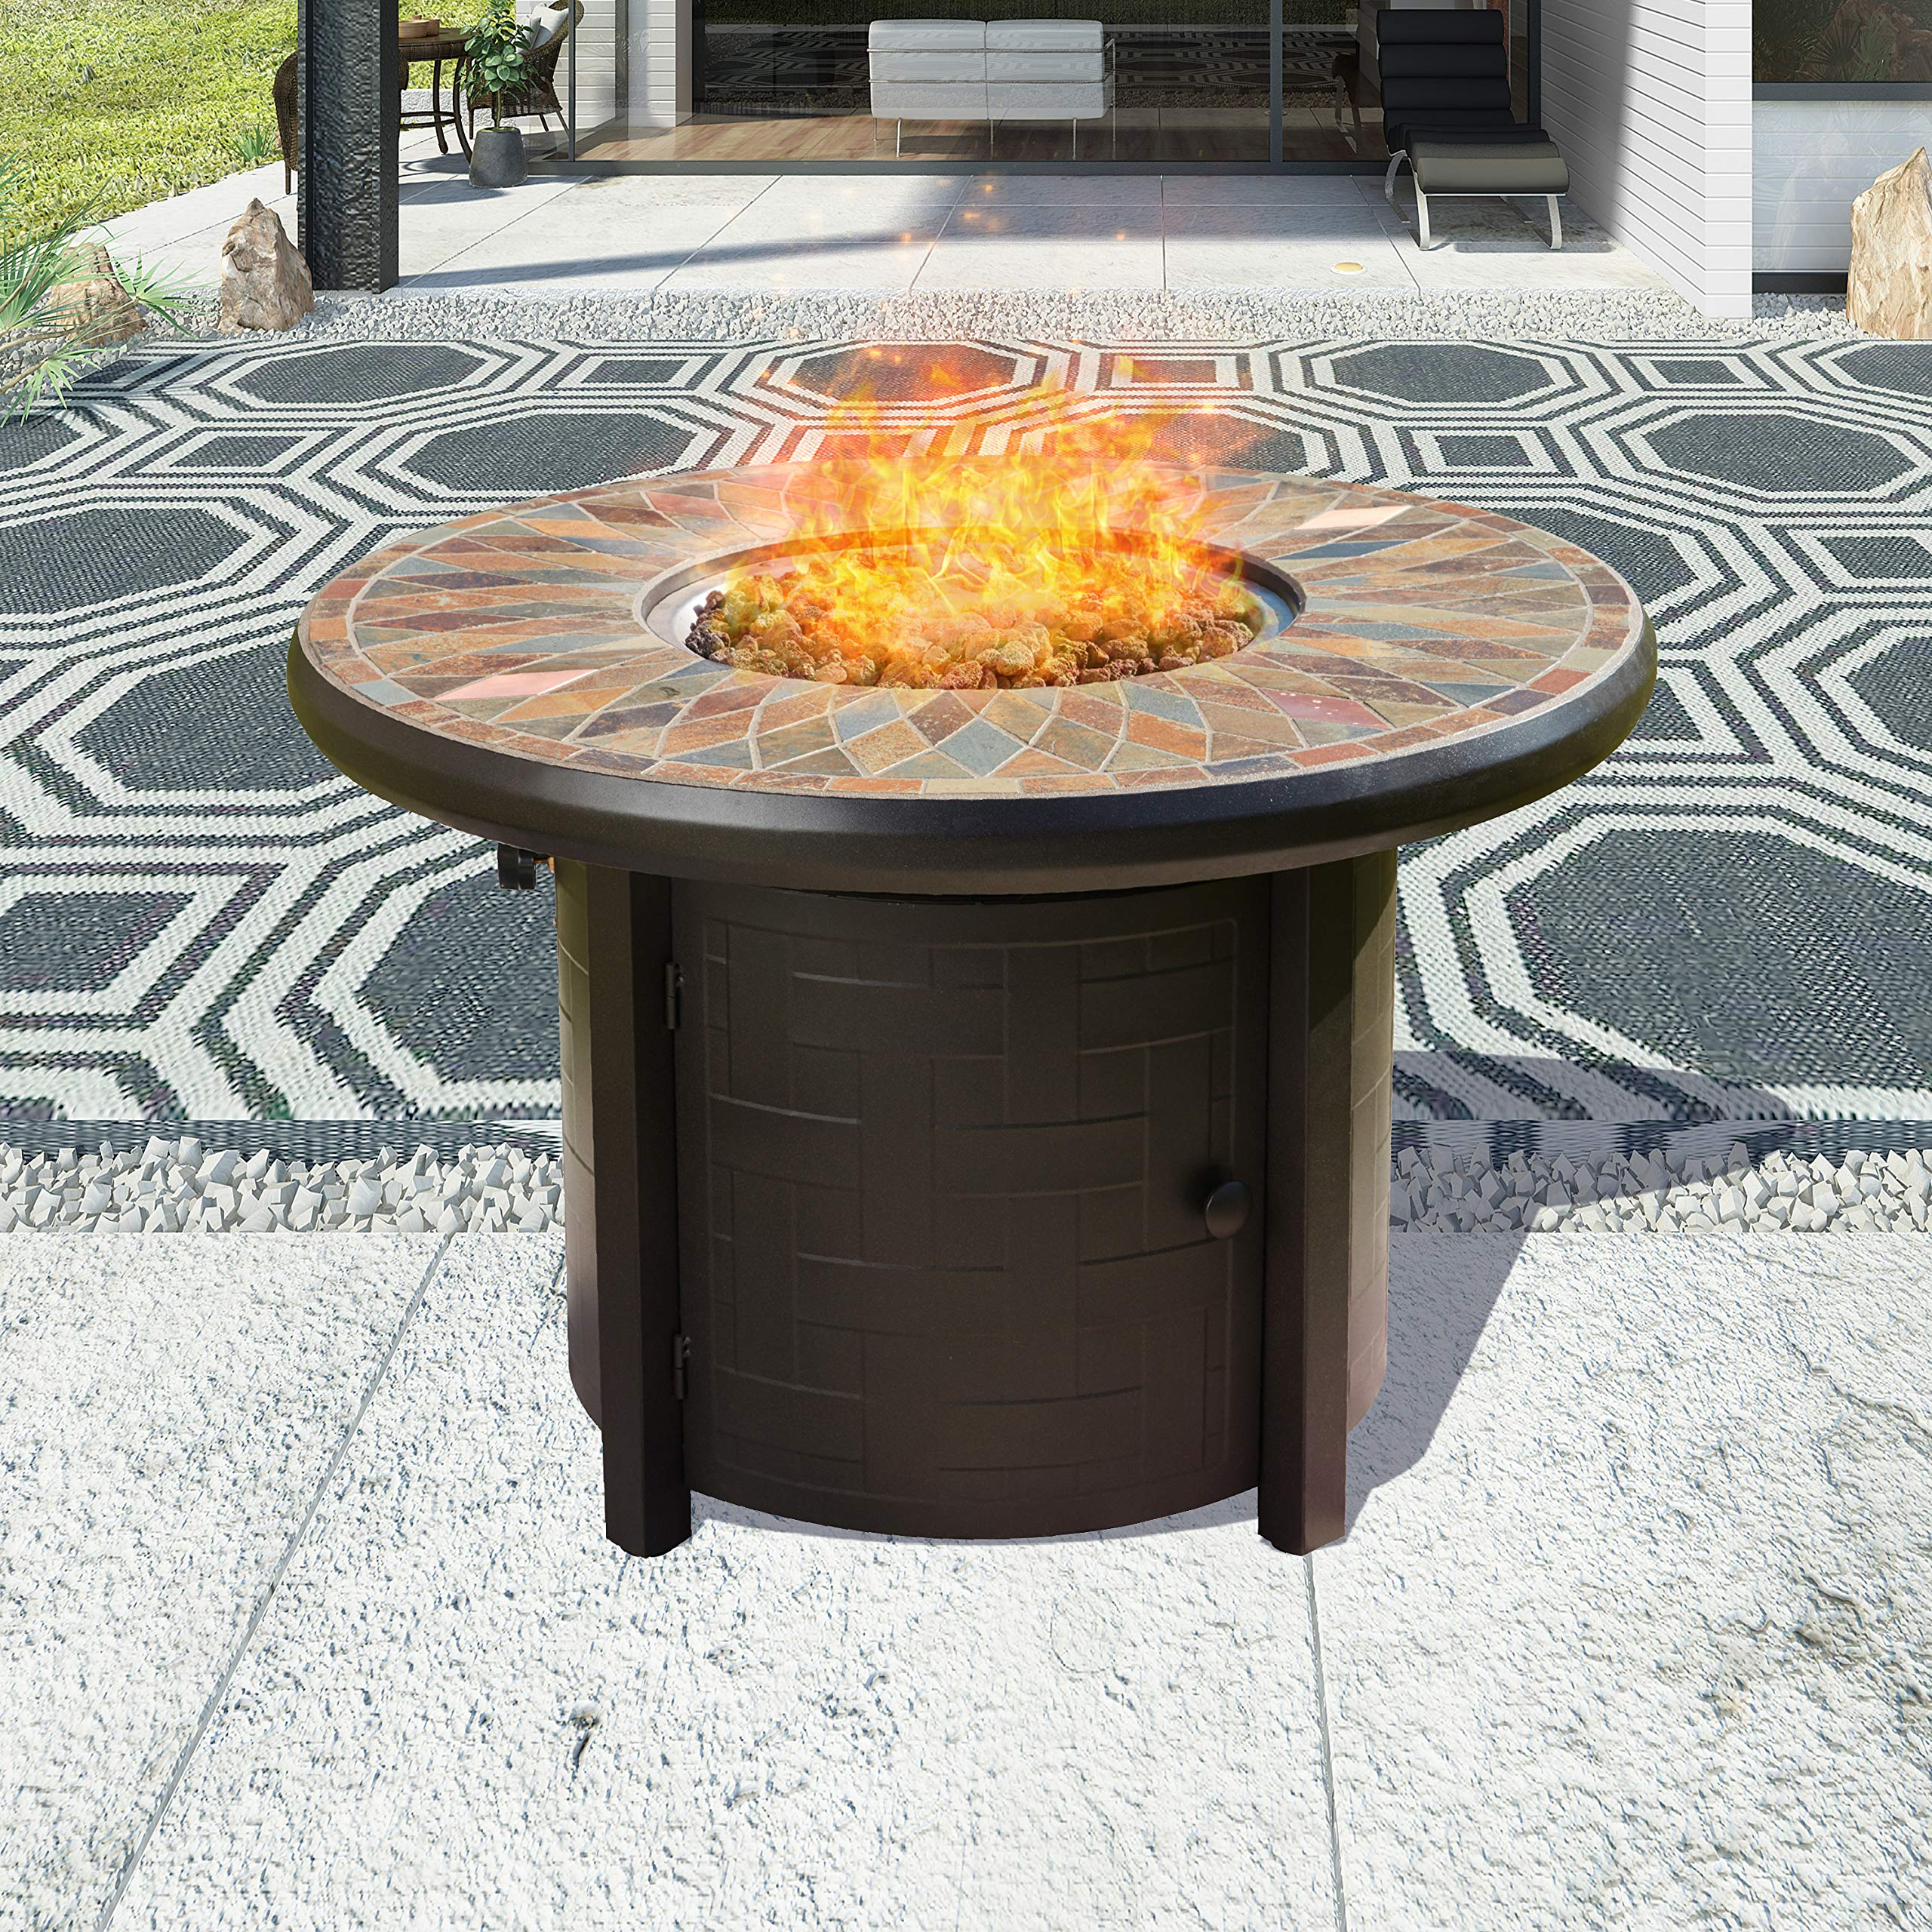 Top Space Propane Fire Pit Table Outdoor Gas Fire Table Patio Heater CSA Certification 50,000 BTU Auto-Ignition with Natural Slate Tile Tabletop, 42 Inch, Round, Bronze by Top Space